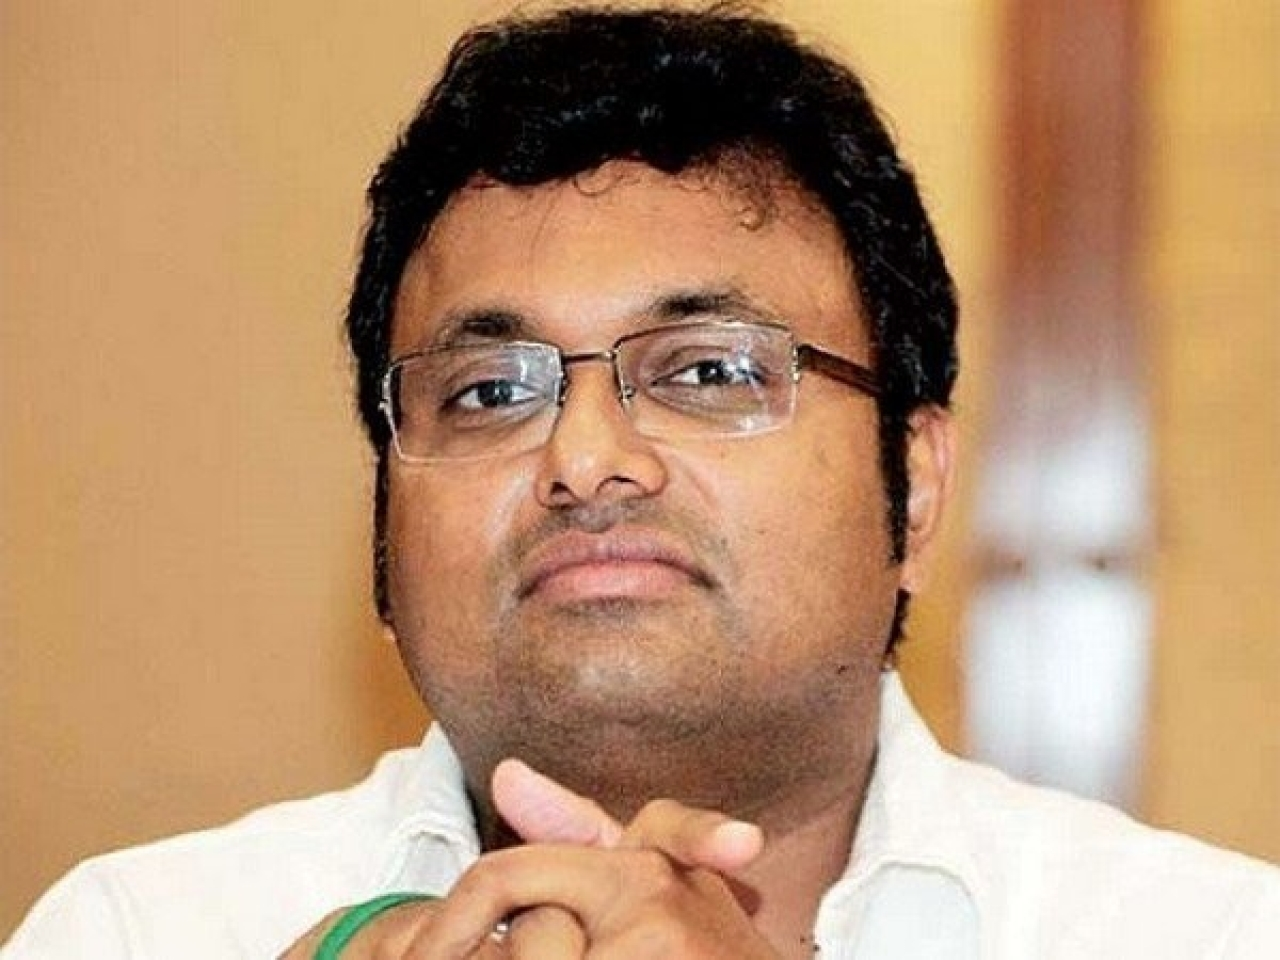 Aircel-Maxis Case: SC Bench Refuses To Release Rs 10 Crore Security Deposit By Karti Chidambaram For Travelling Abroad